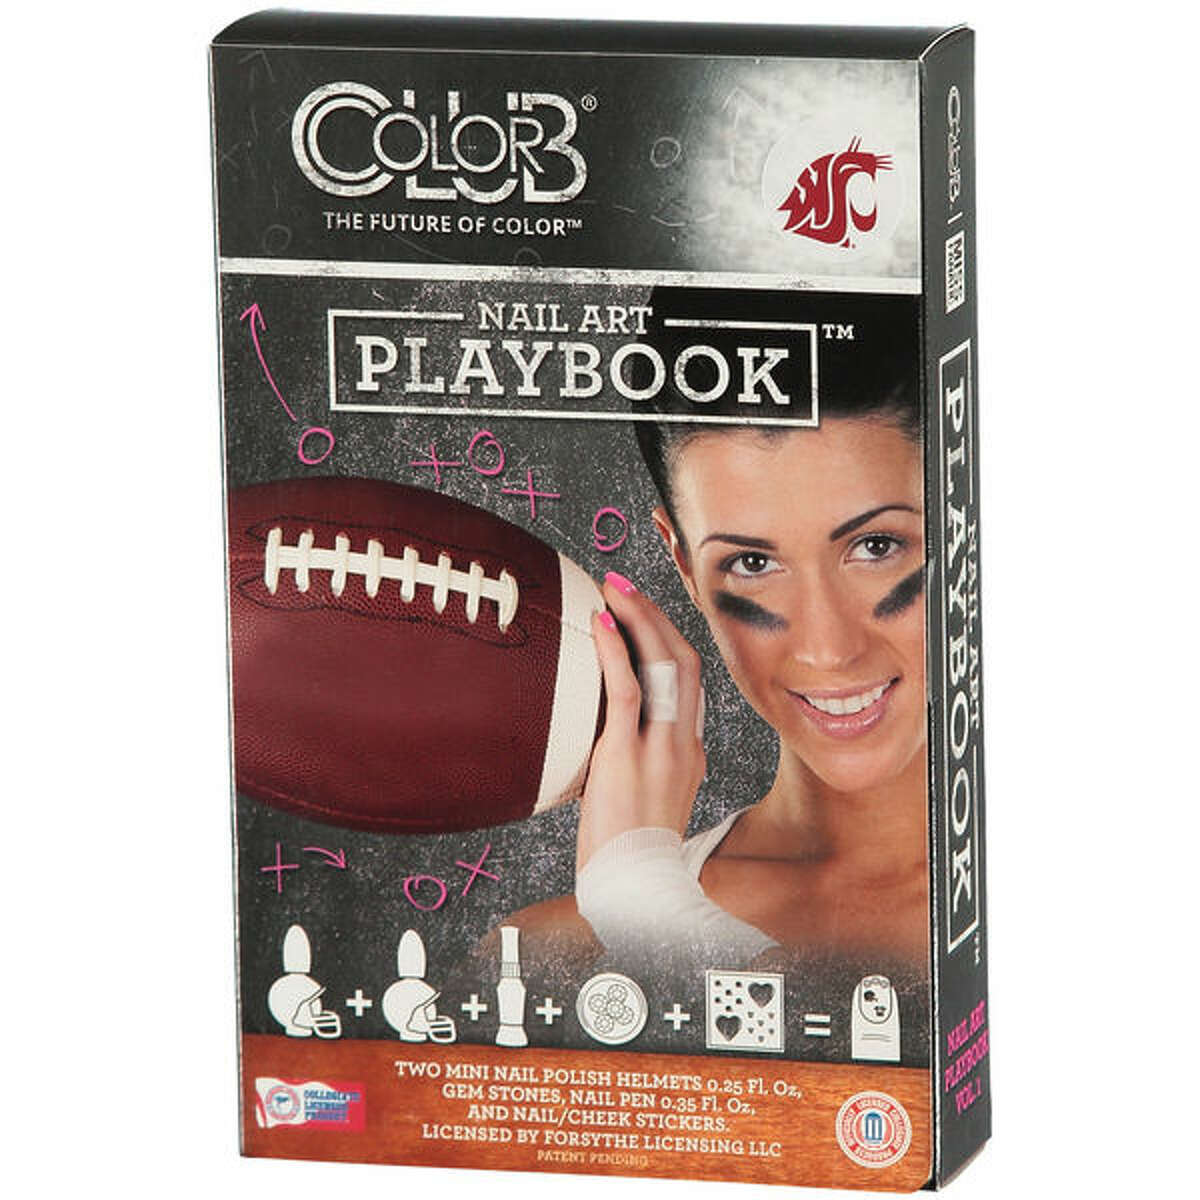 Double your impact when you extend your middle finger at Pac-12 refs with this nail art. All transgressors will receive your message and immediately resign.